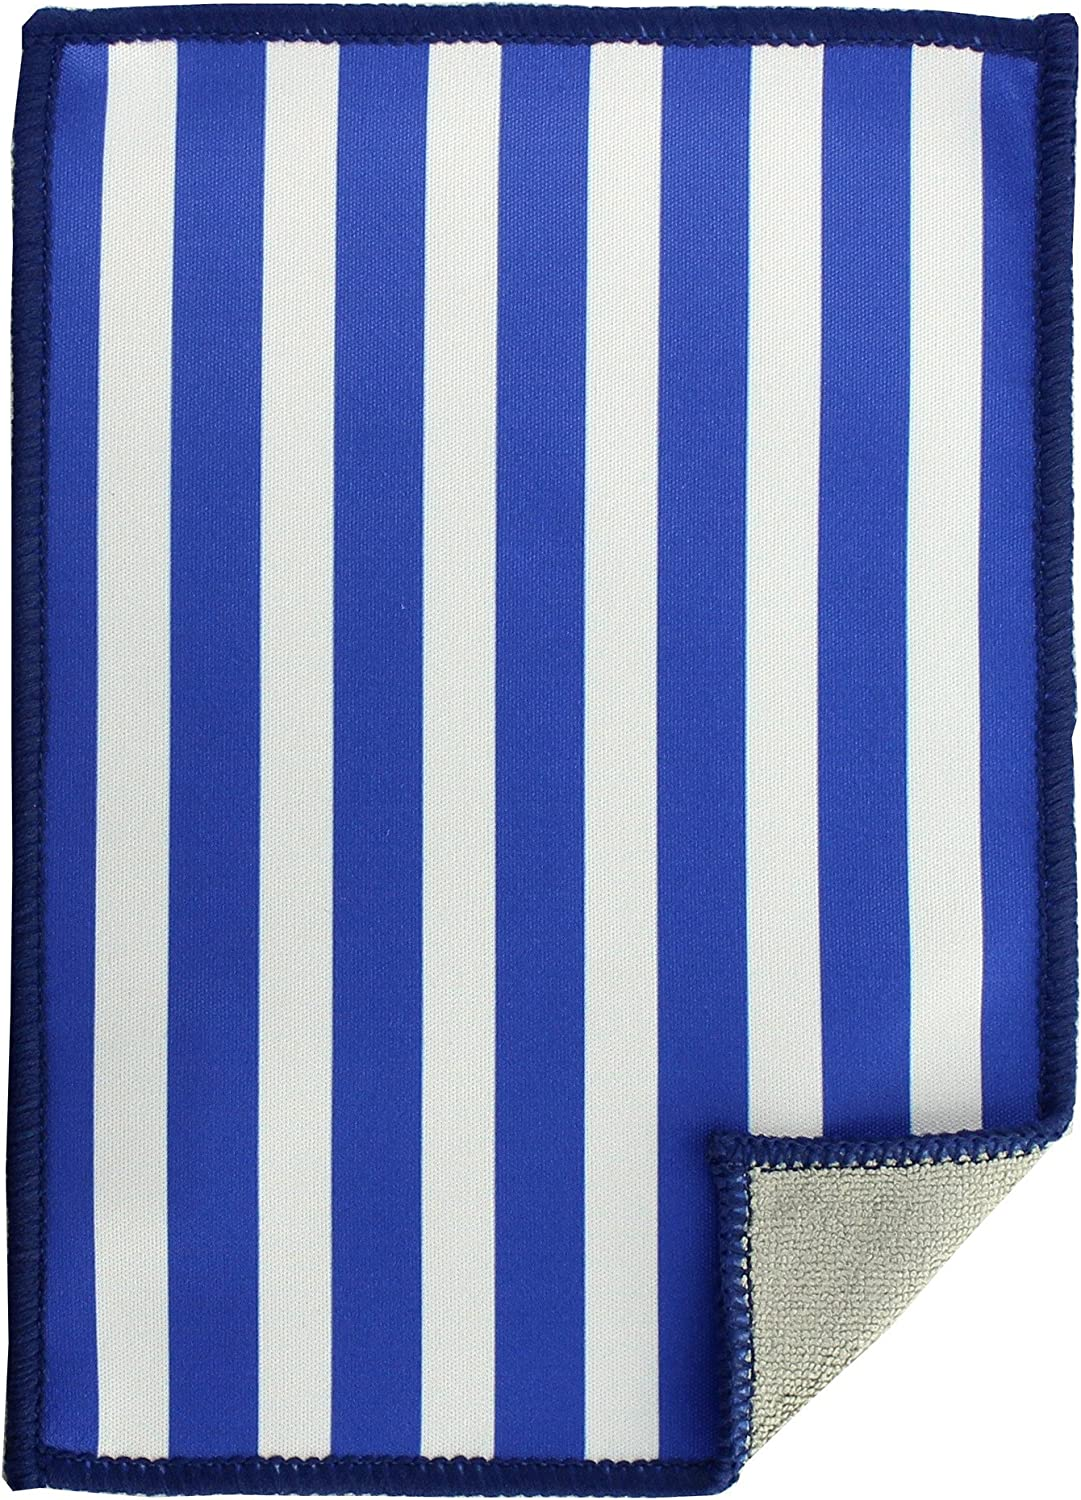 Toddy Gear Microfiber Screen Cleaning Cloth for Cell Phones, Tablets and Electronic Screens, 5 x 7 Inches, Anchors Aweigh Blue (PD6021)